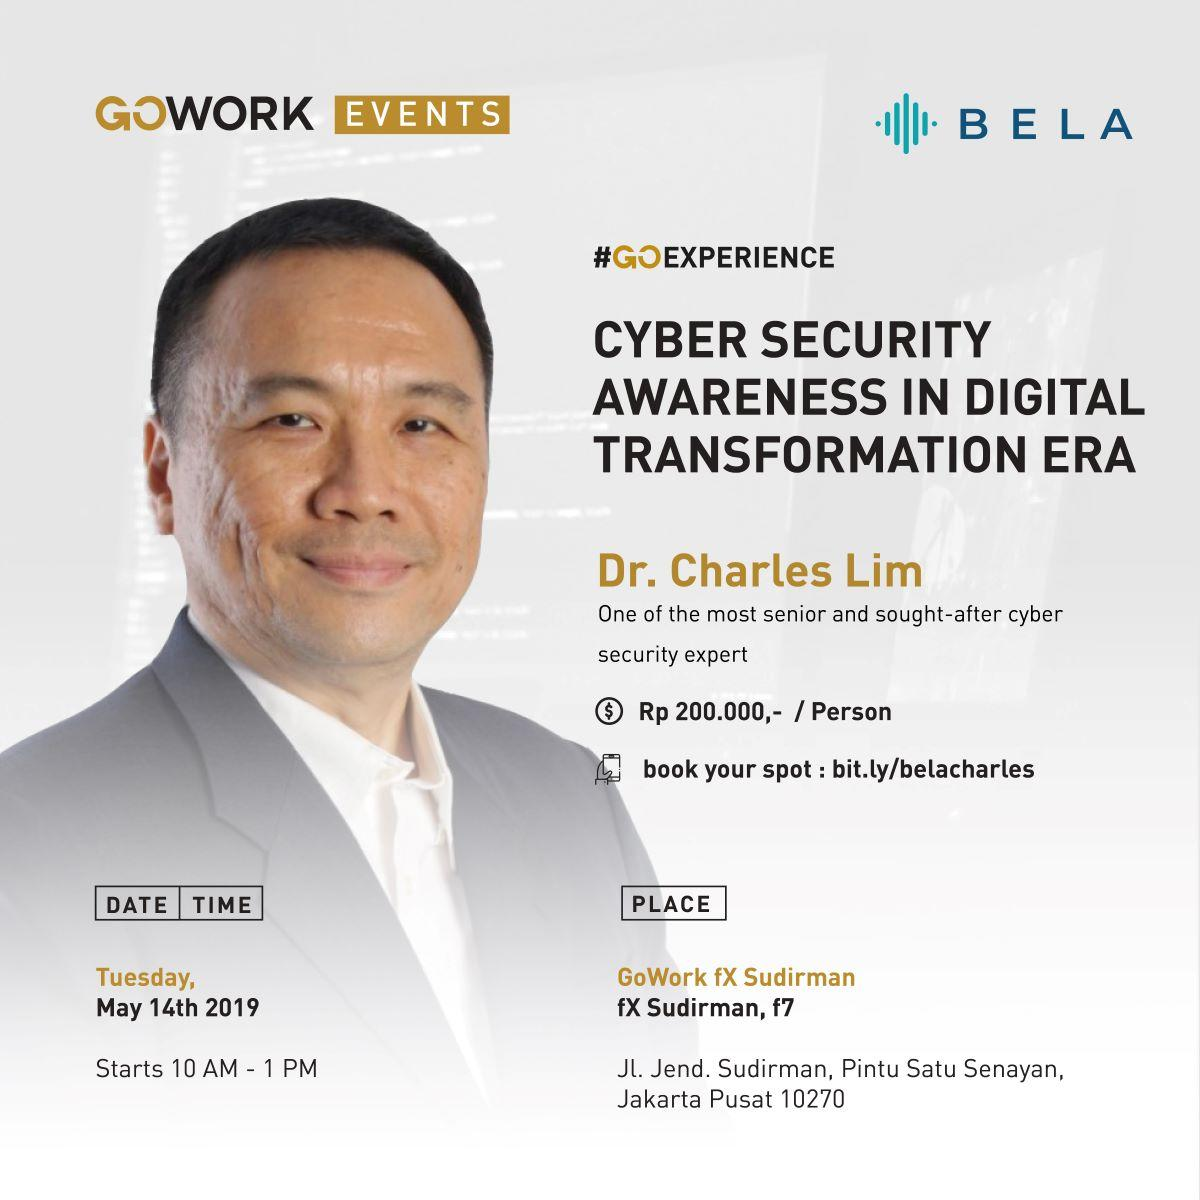 Learn How To Raise Awareness In Cyber Security In The Digital Transformation Era